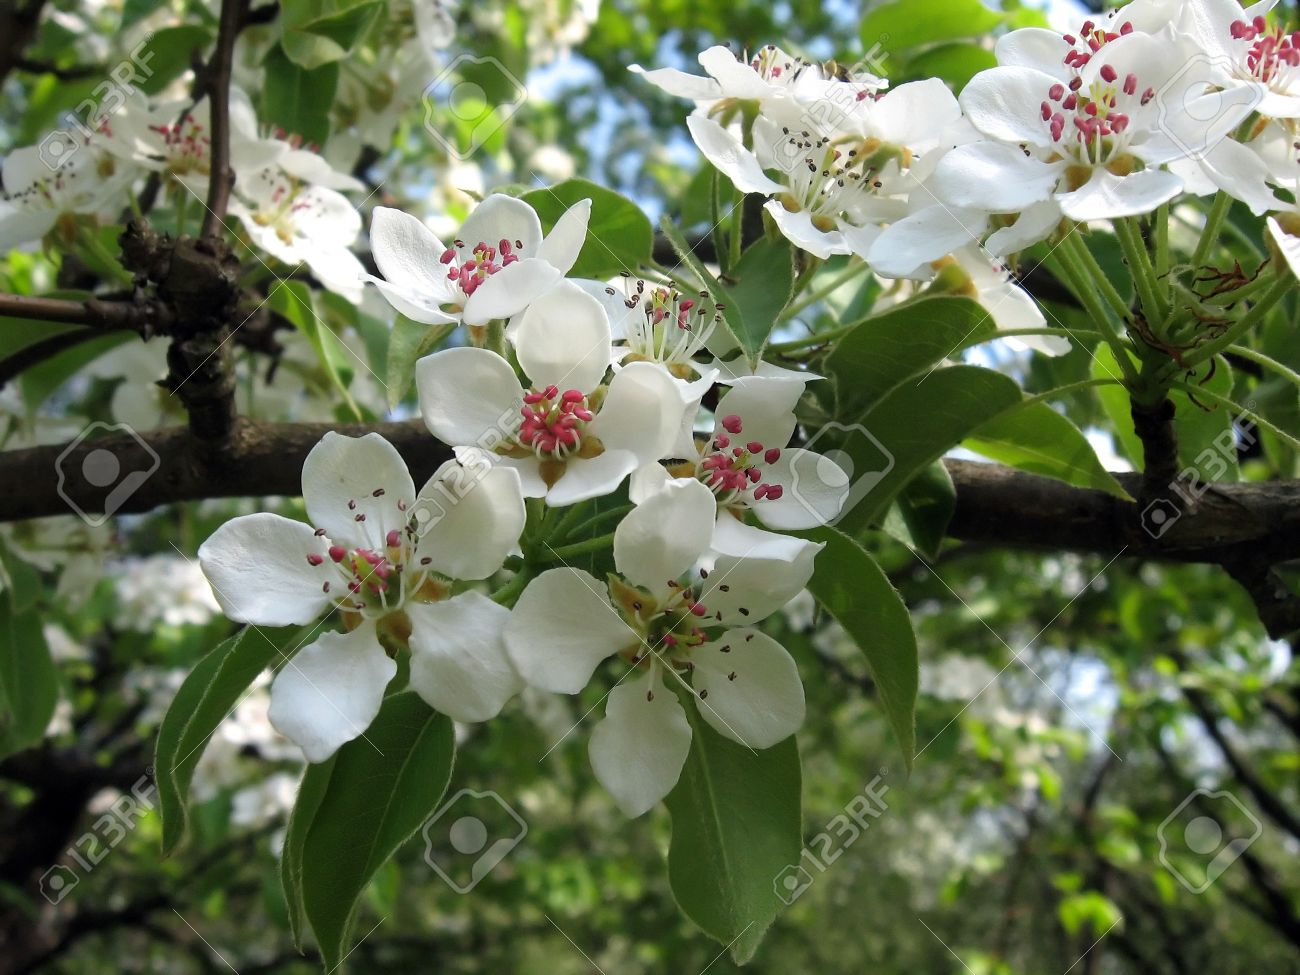 Lovely Fruit Tree Flowers Part - 1: Fruit Tree Blooms White Flowers In Spring Stock Photo - 7066658